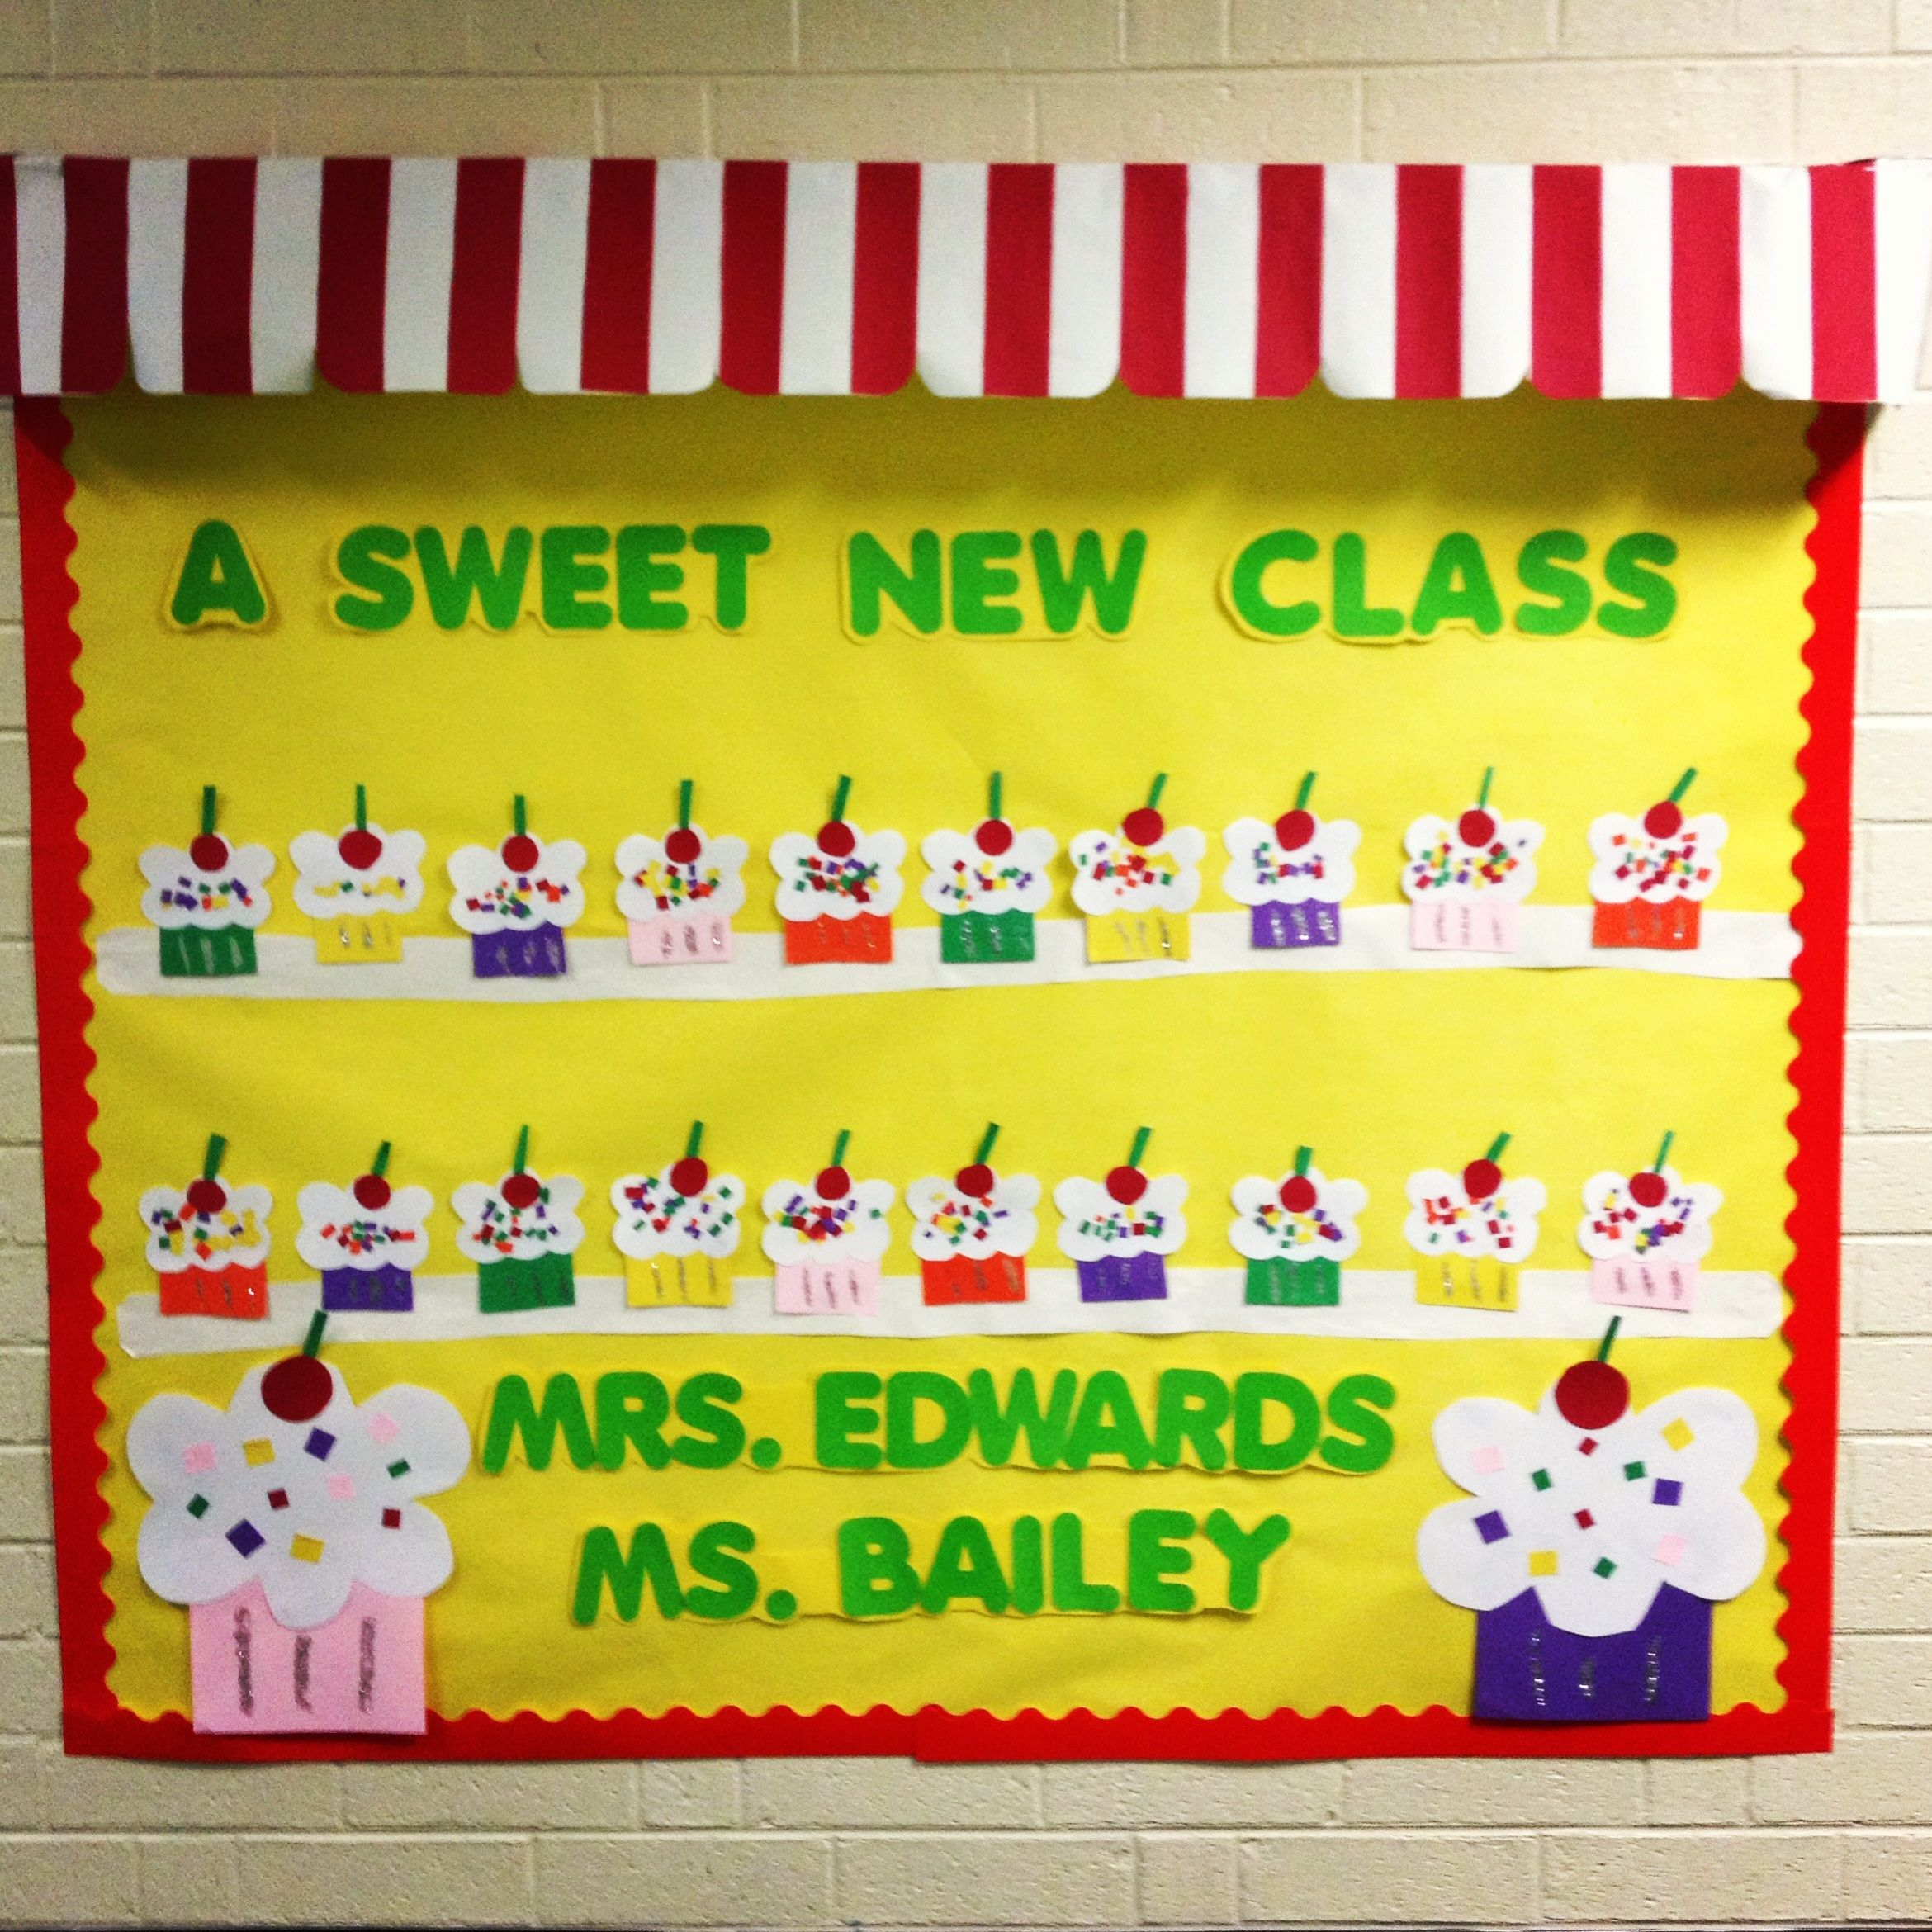 10 Gorgeous Back To School Preschool Bulletin Board Ideas back to school bulletin board what kindergartener doesnt love 1 2020